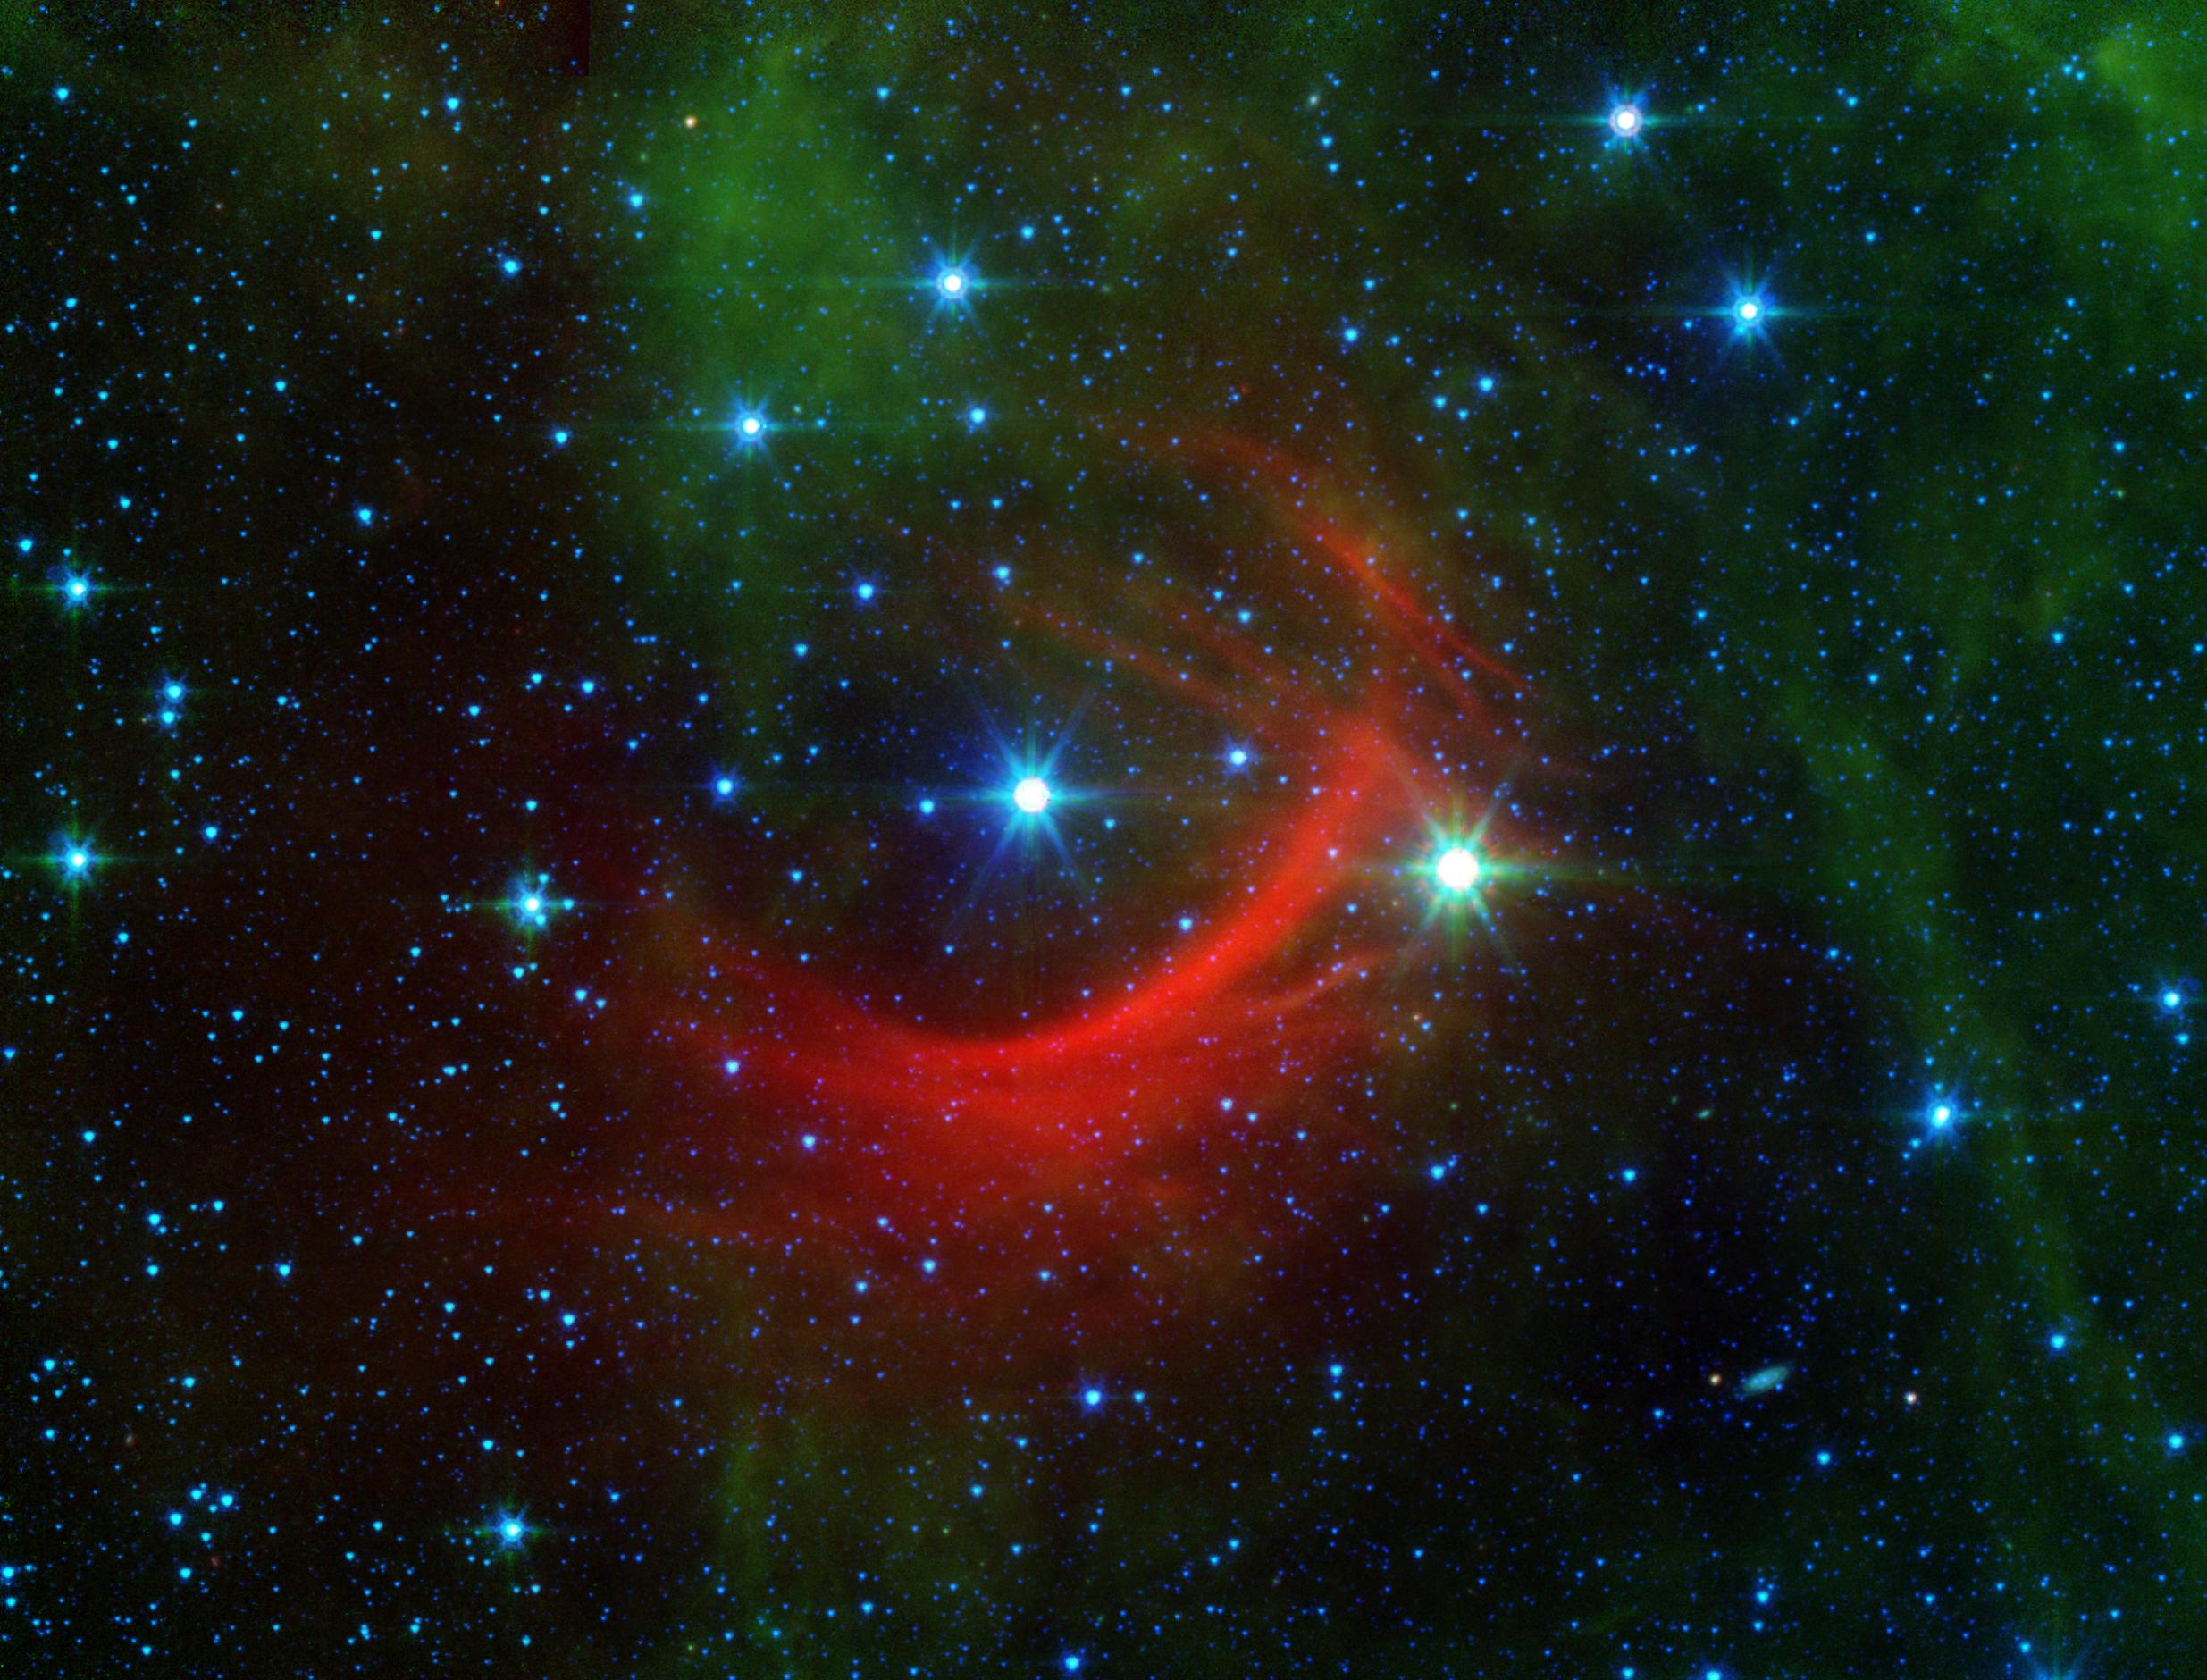 The bow shock of Kappa Cassiopeiae, a massive, hot supergiant